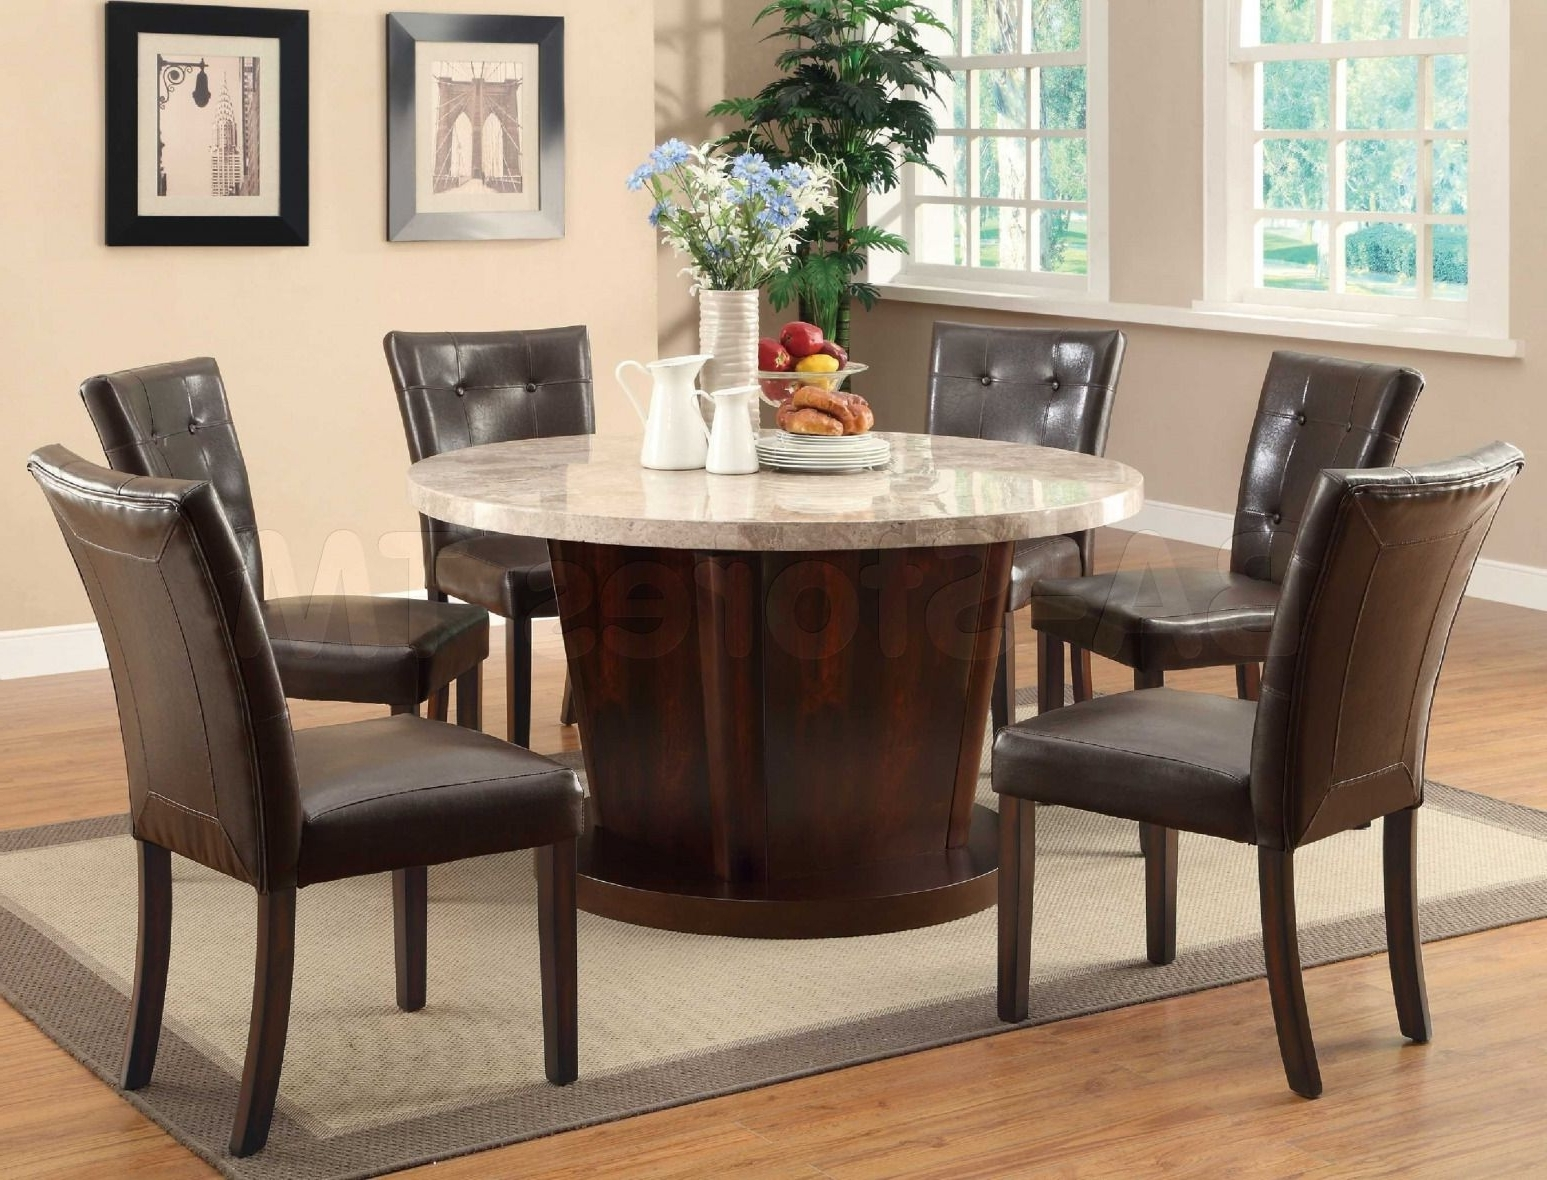 6 Person Round Dining Tables for Recent 100+ Round 6 Person Dining Table - Best Office Furniture Check More